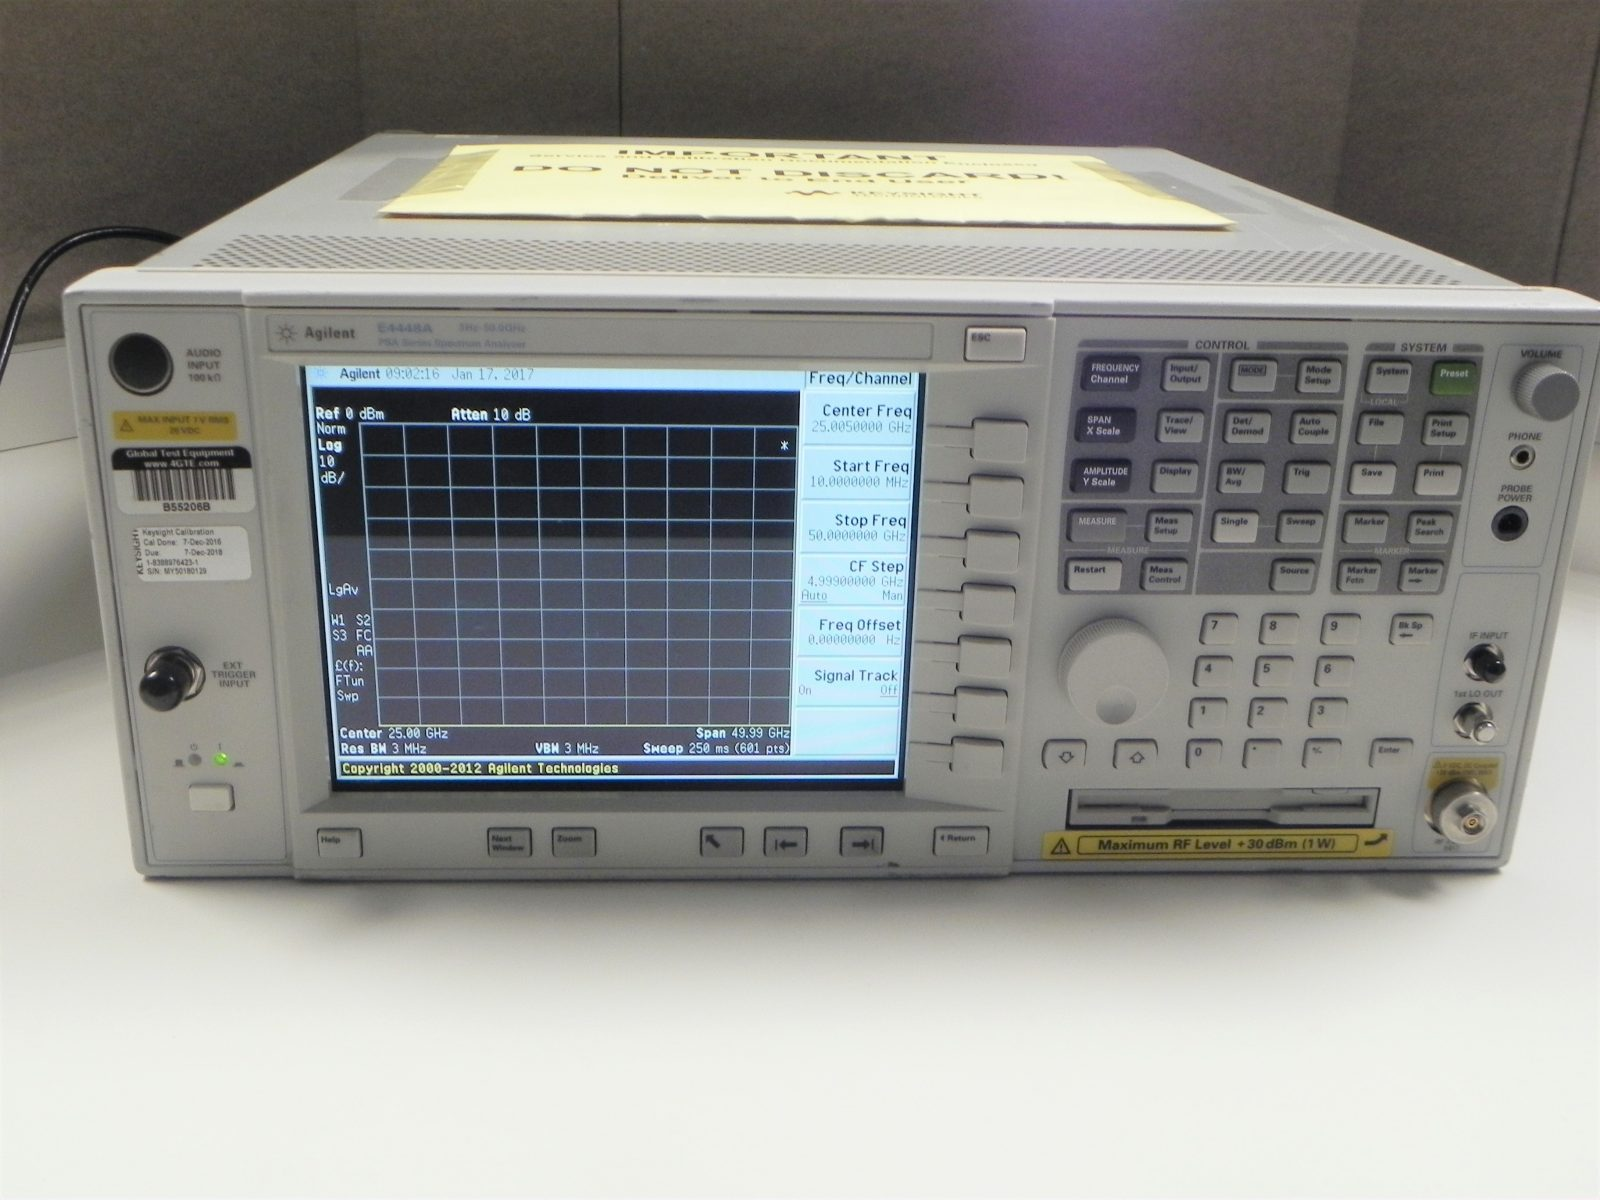 Network Analyzer Hp Agilent E4448a Psa Series Spectrum Analyzer 3 Hz 50 Ghz Options 1ds B7j H70 Ayz 219 226 Calibrated